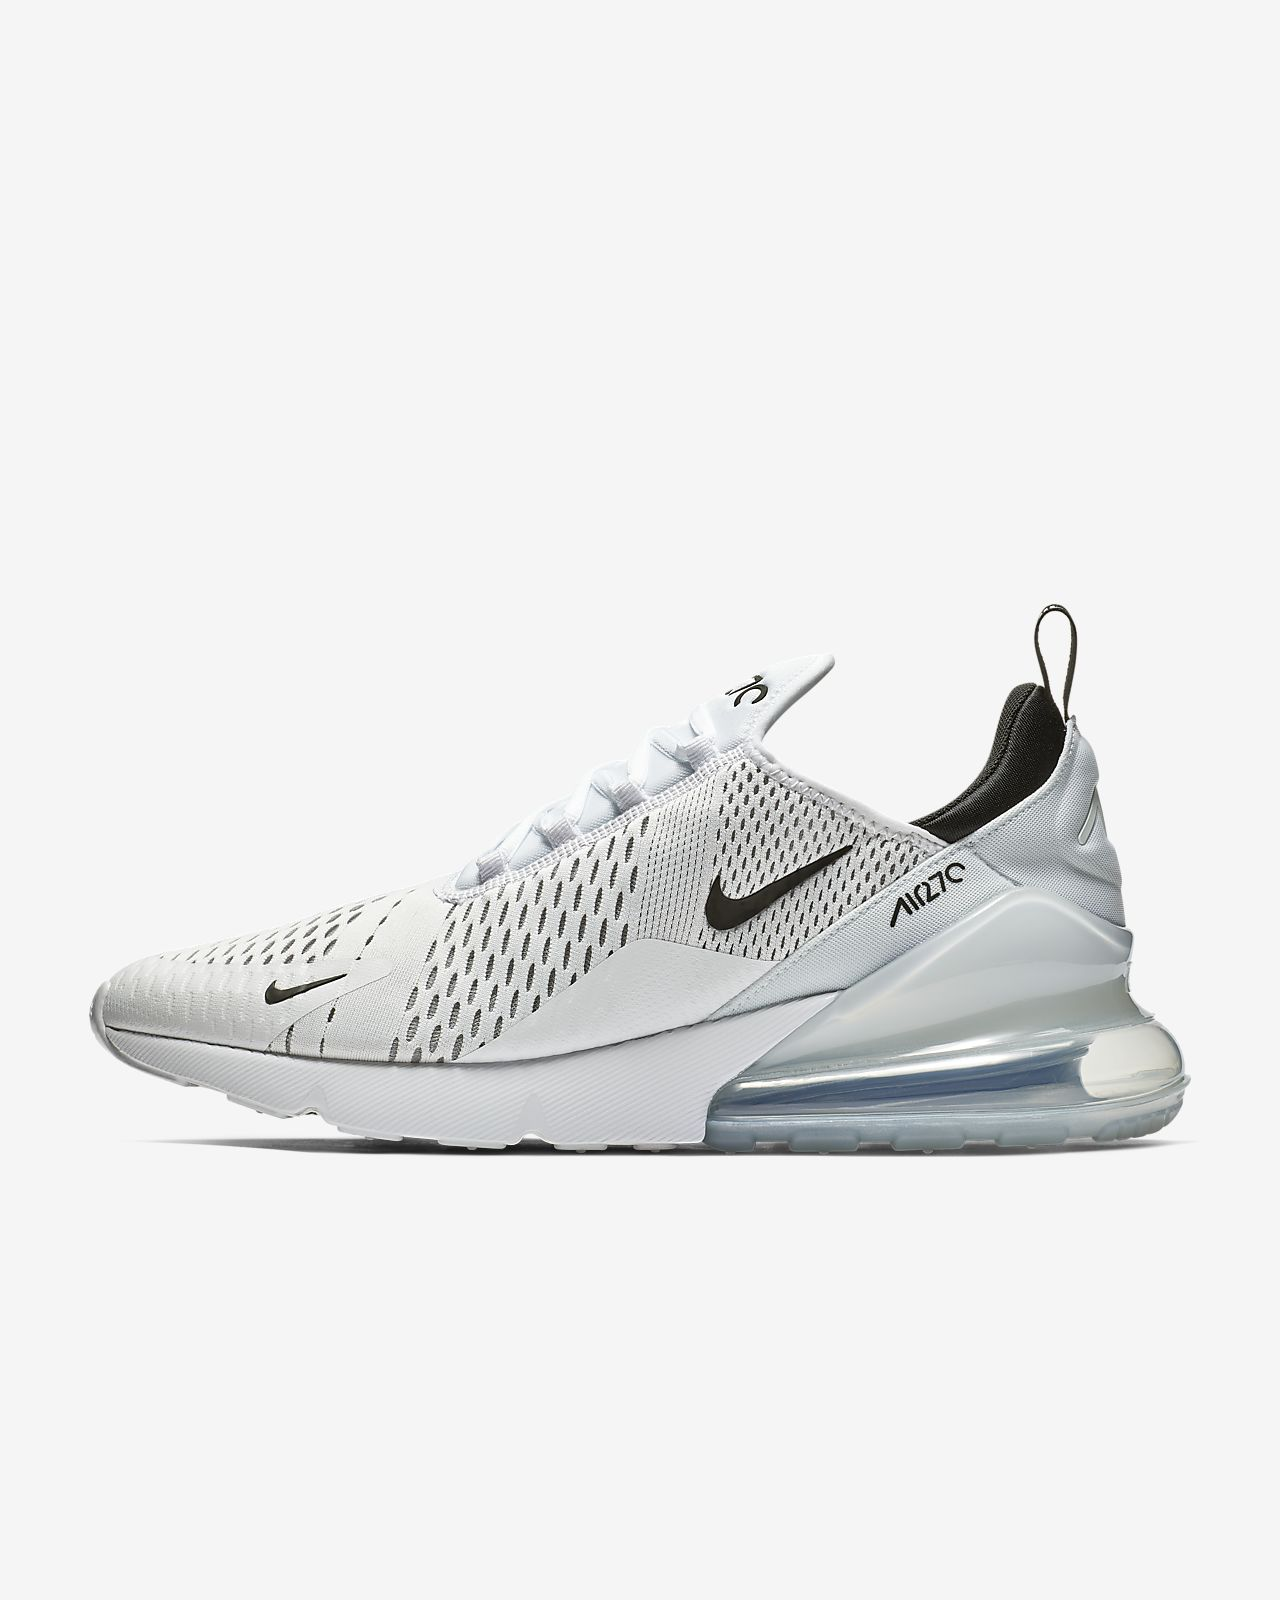 coupon for nike air max 270 arrives in nero photo blu 47d51